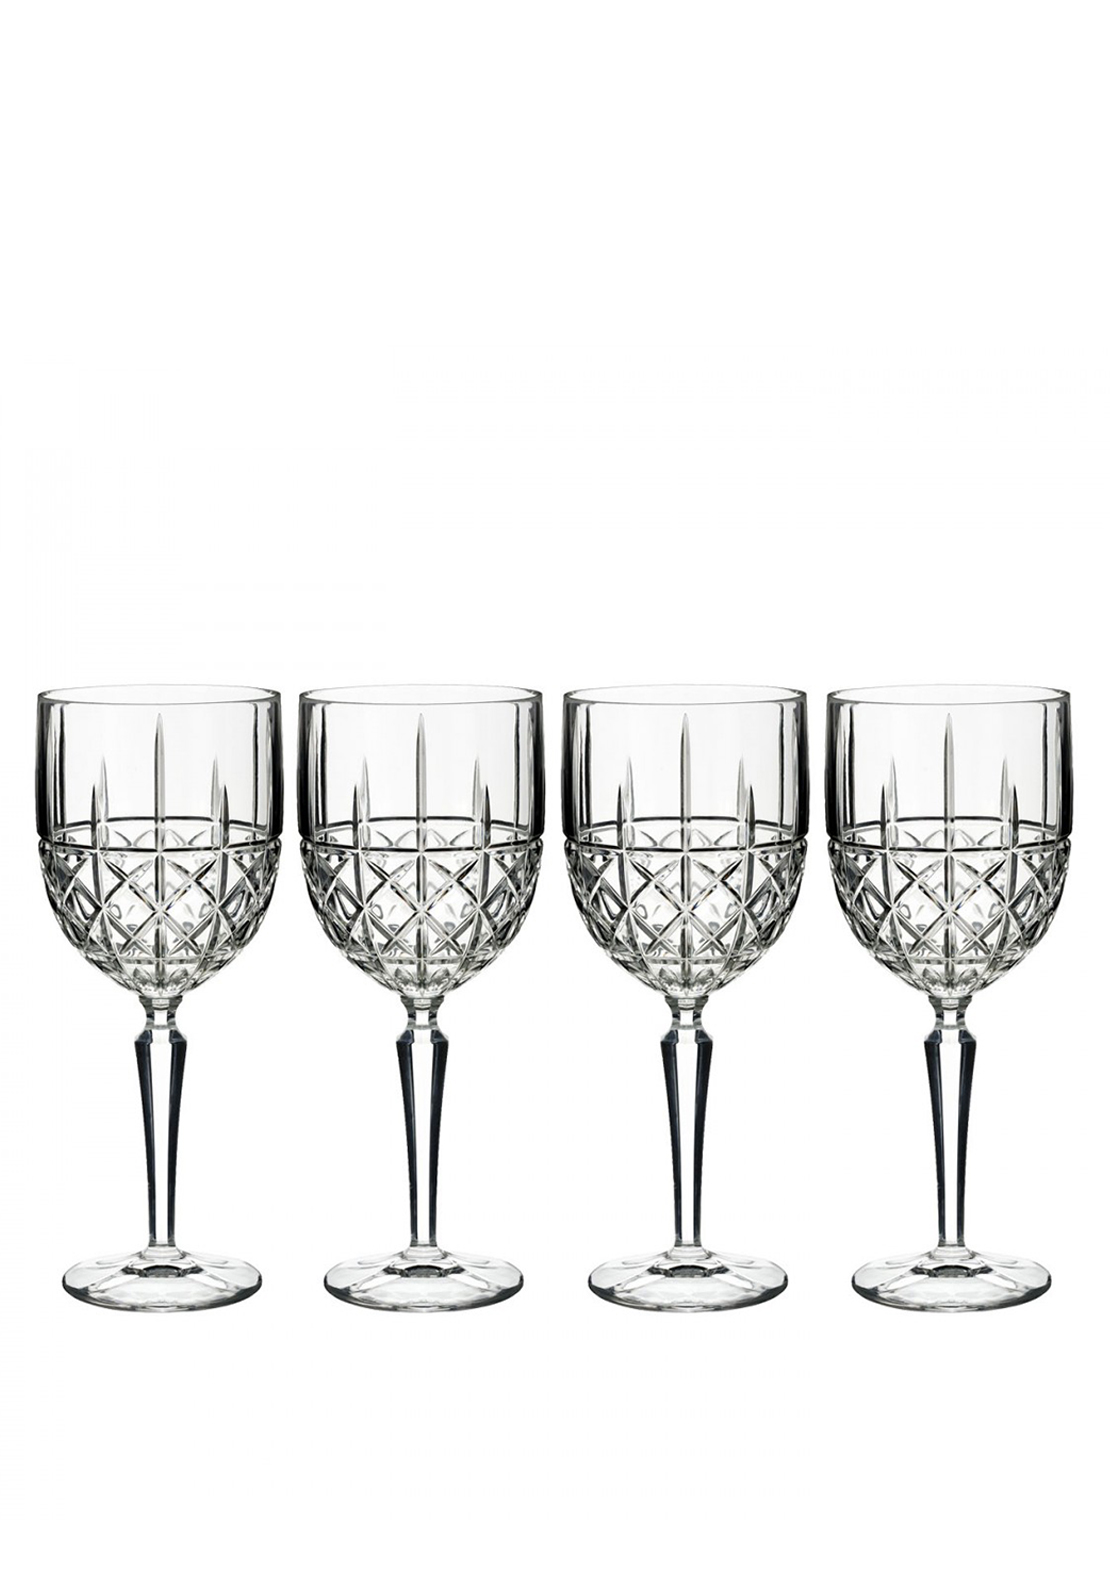 Marquis by Waterford Crystal Wine Glasses, Set of 4